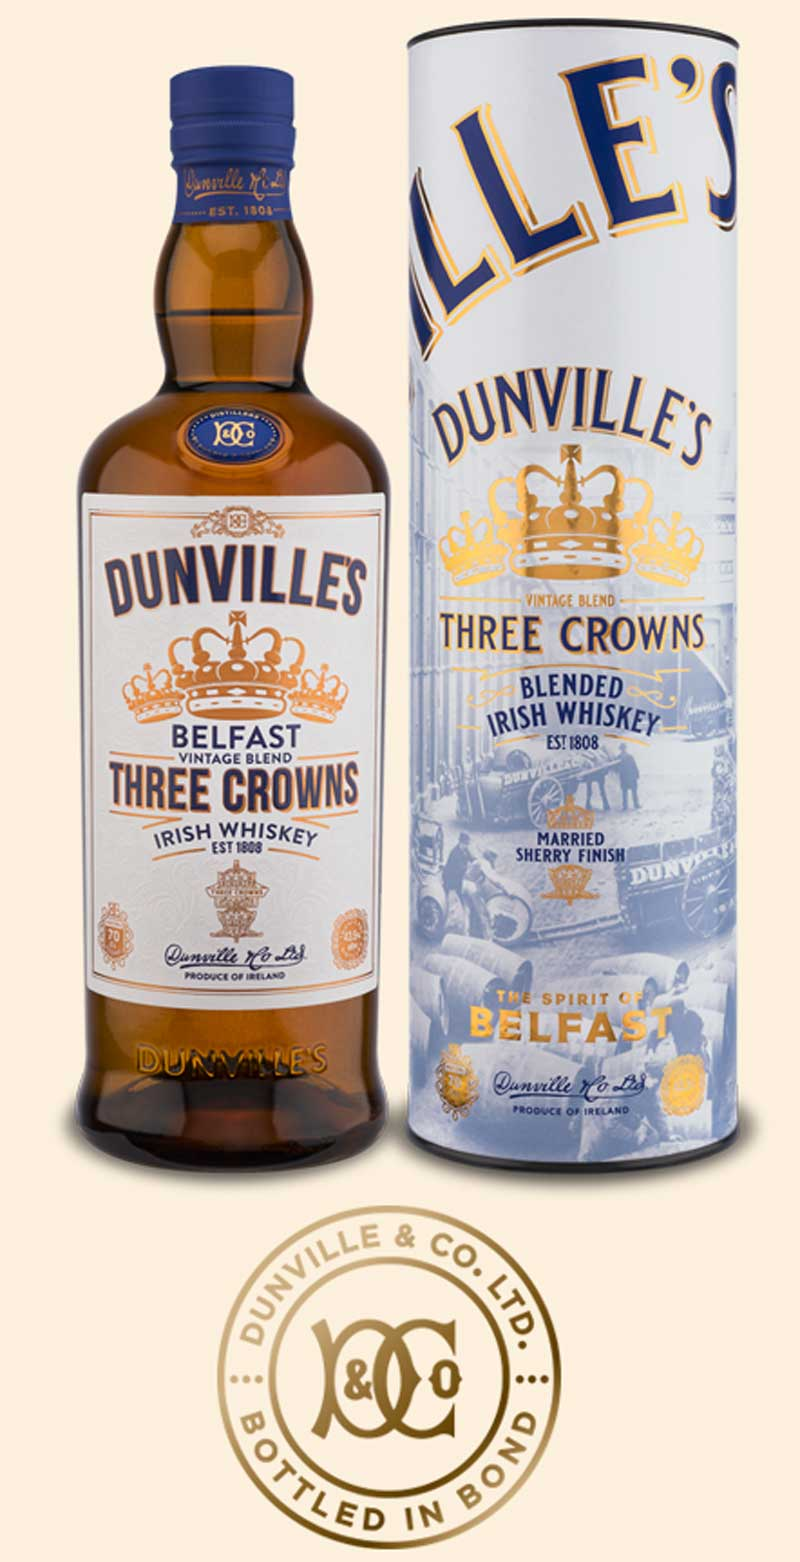 Dunville's Three Crowns Blended Irish Whiskey Bottle